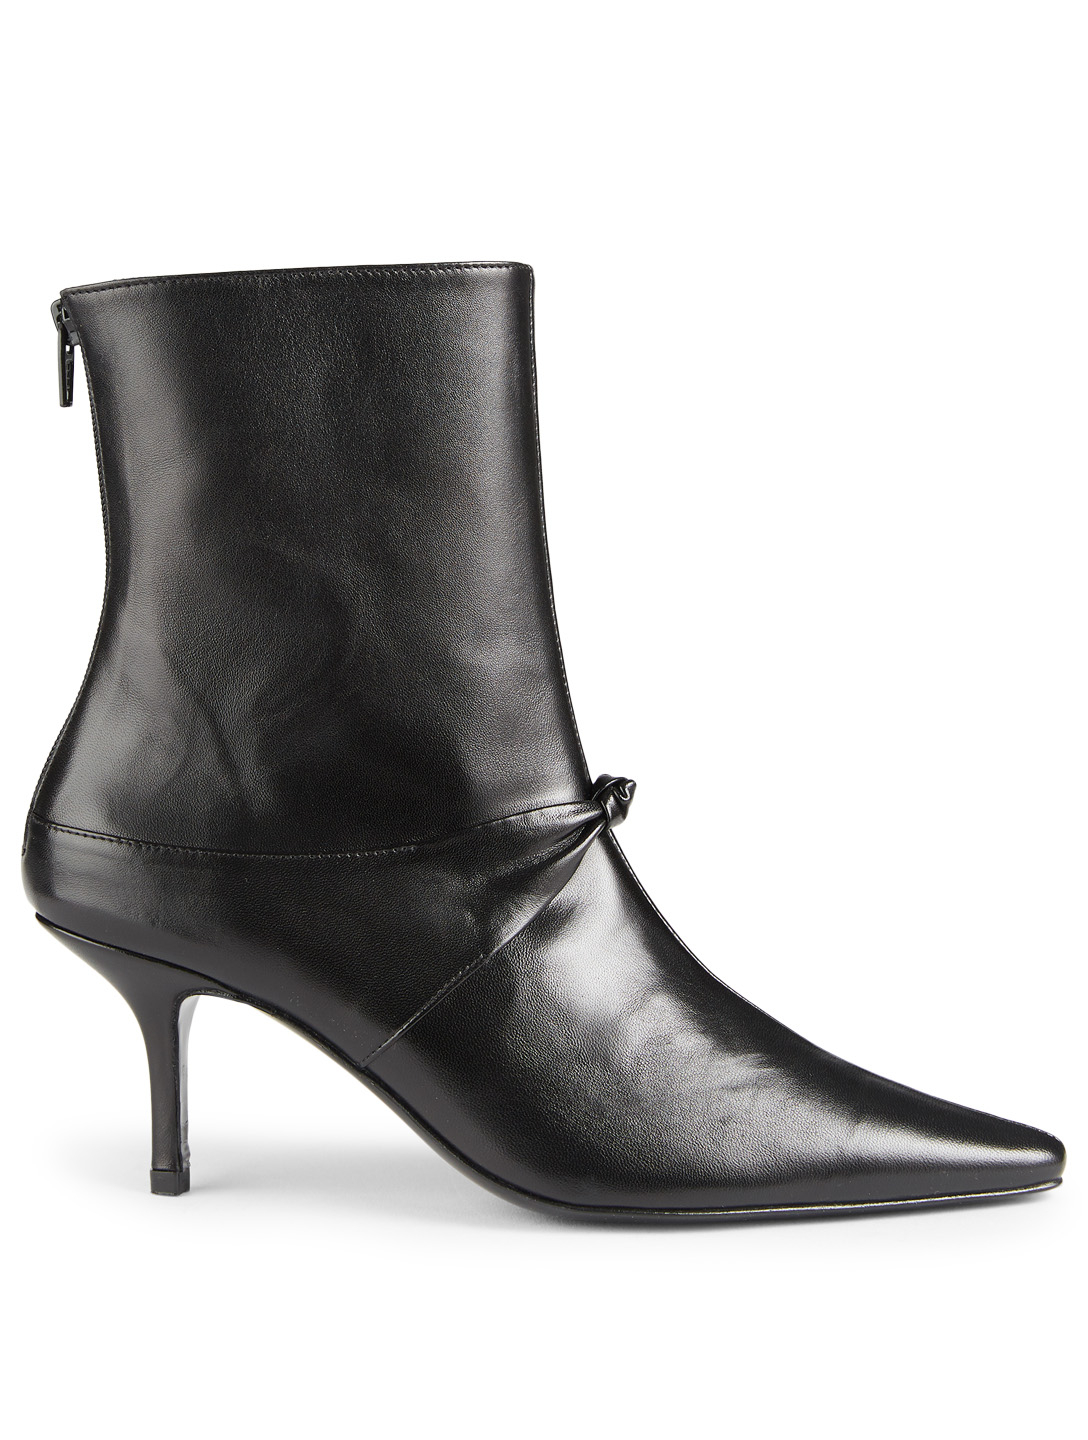 DORATEYMUR Groupie Knot Leather Ankle Boots Womens Black